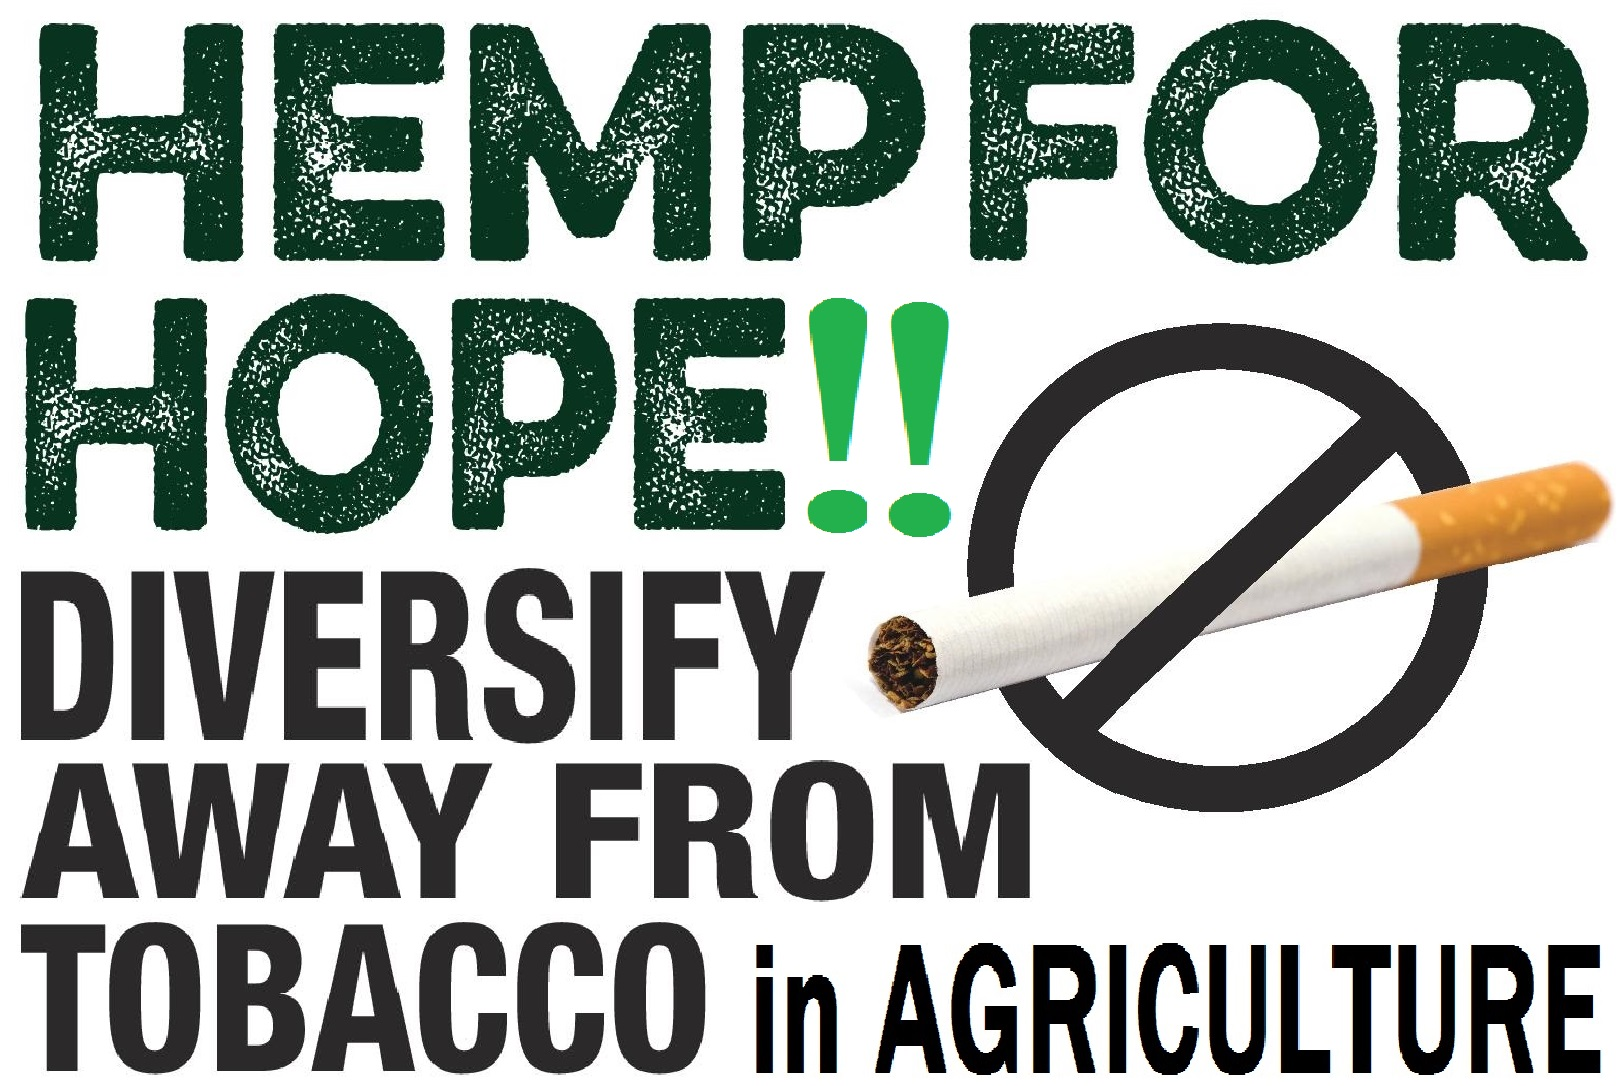 Away From Tobacco for AG